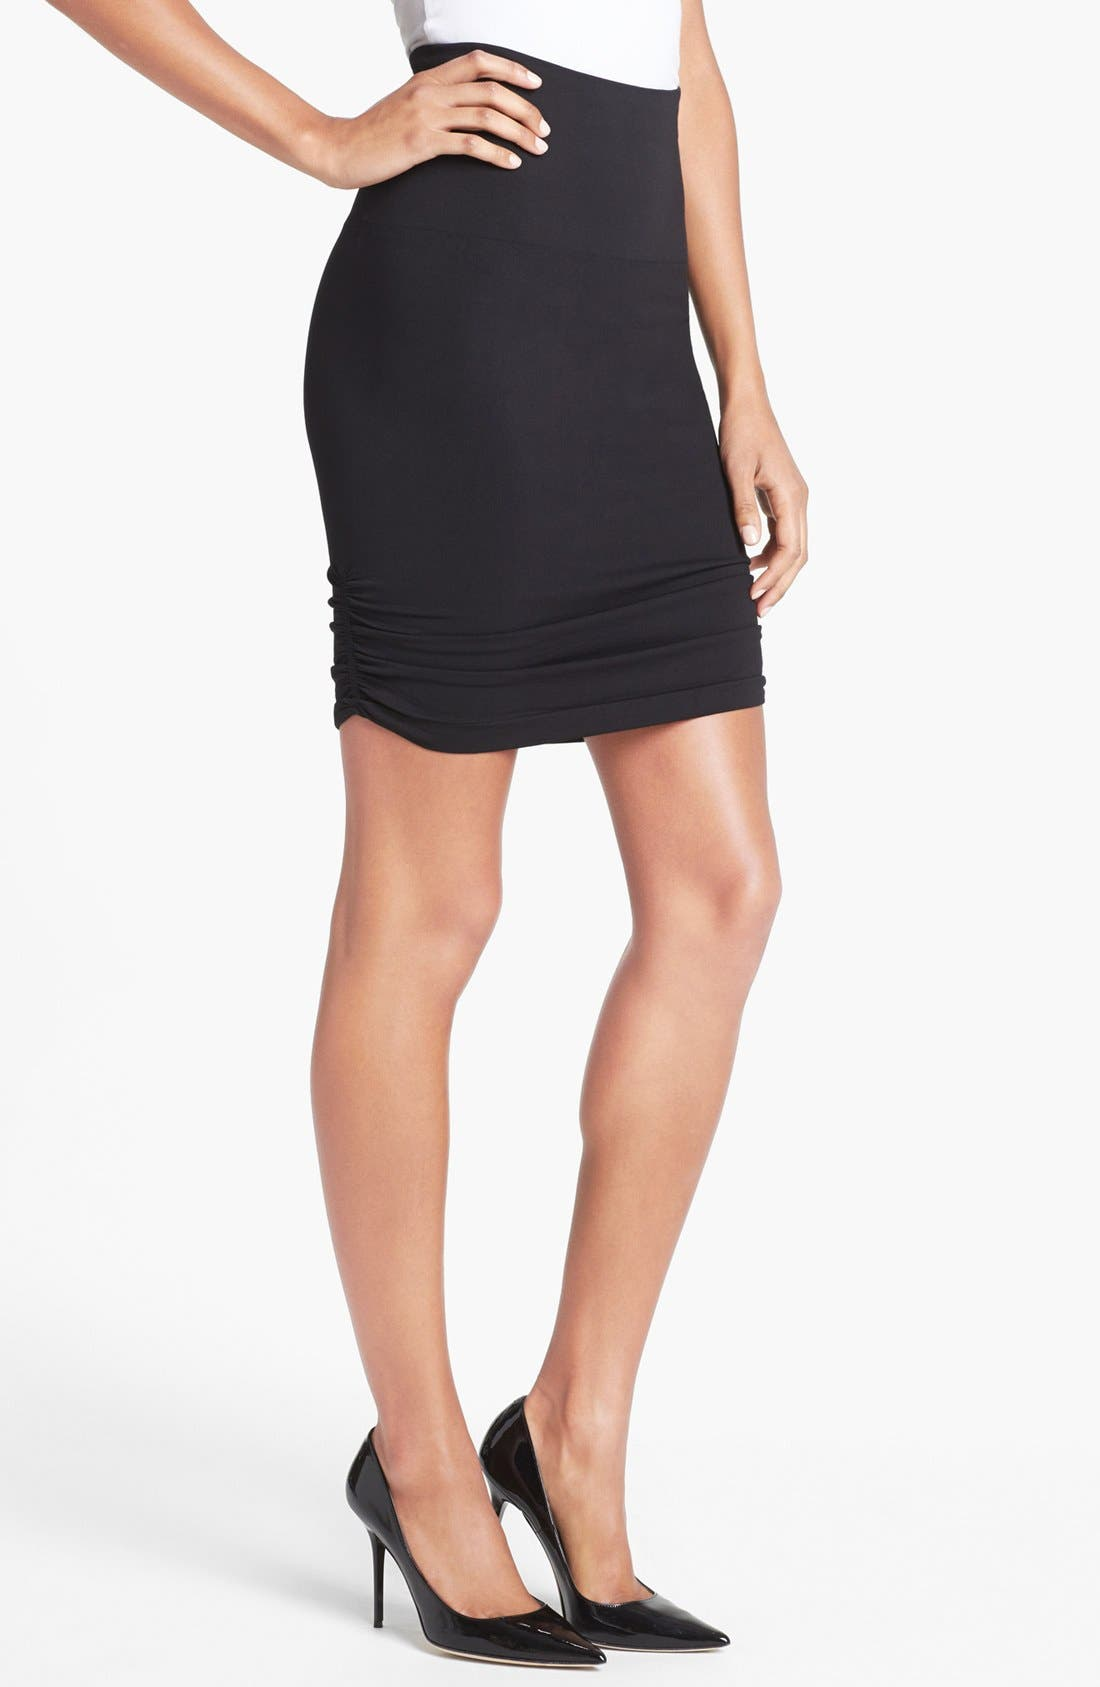 Alternate Image 1 Selected - Star Power by SPANX® 'Tout & About' Shaping Skirt